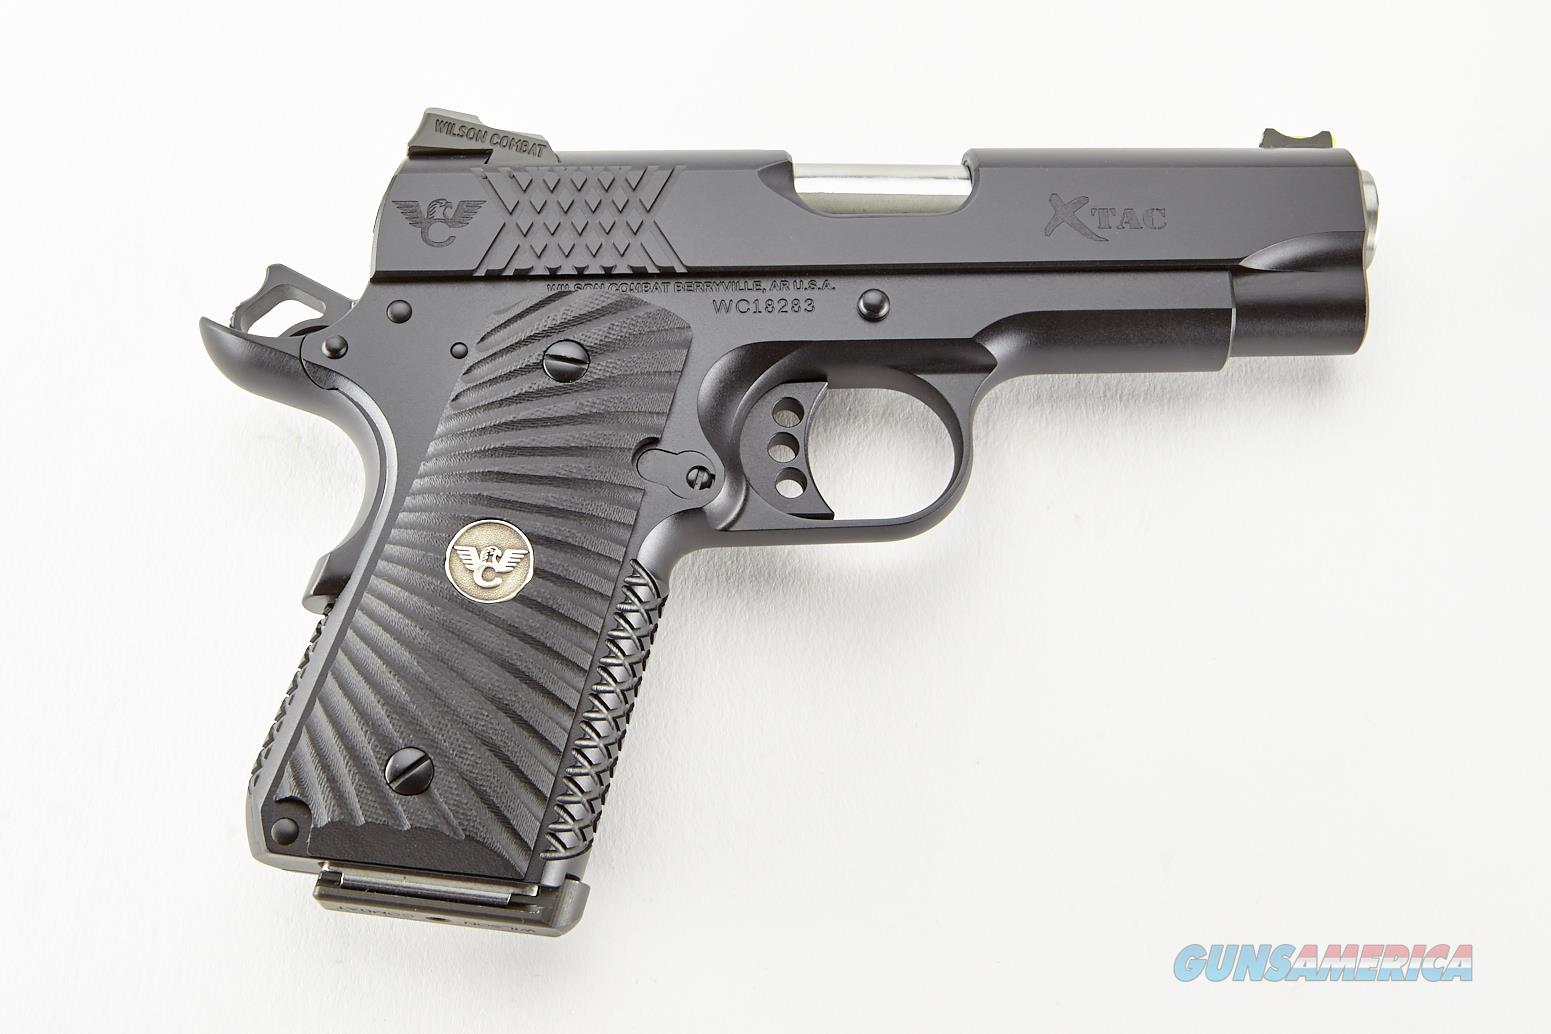 WILSON COMBAT X-TAC, Compact, 45 ACP, Black (Free 10 MONTH Lay-a-Way)  Guns > Pistols > 1911 Pistol Copies (non-Colt)